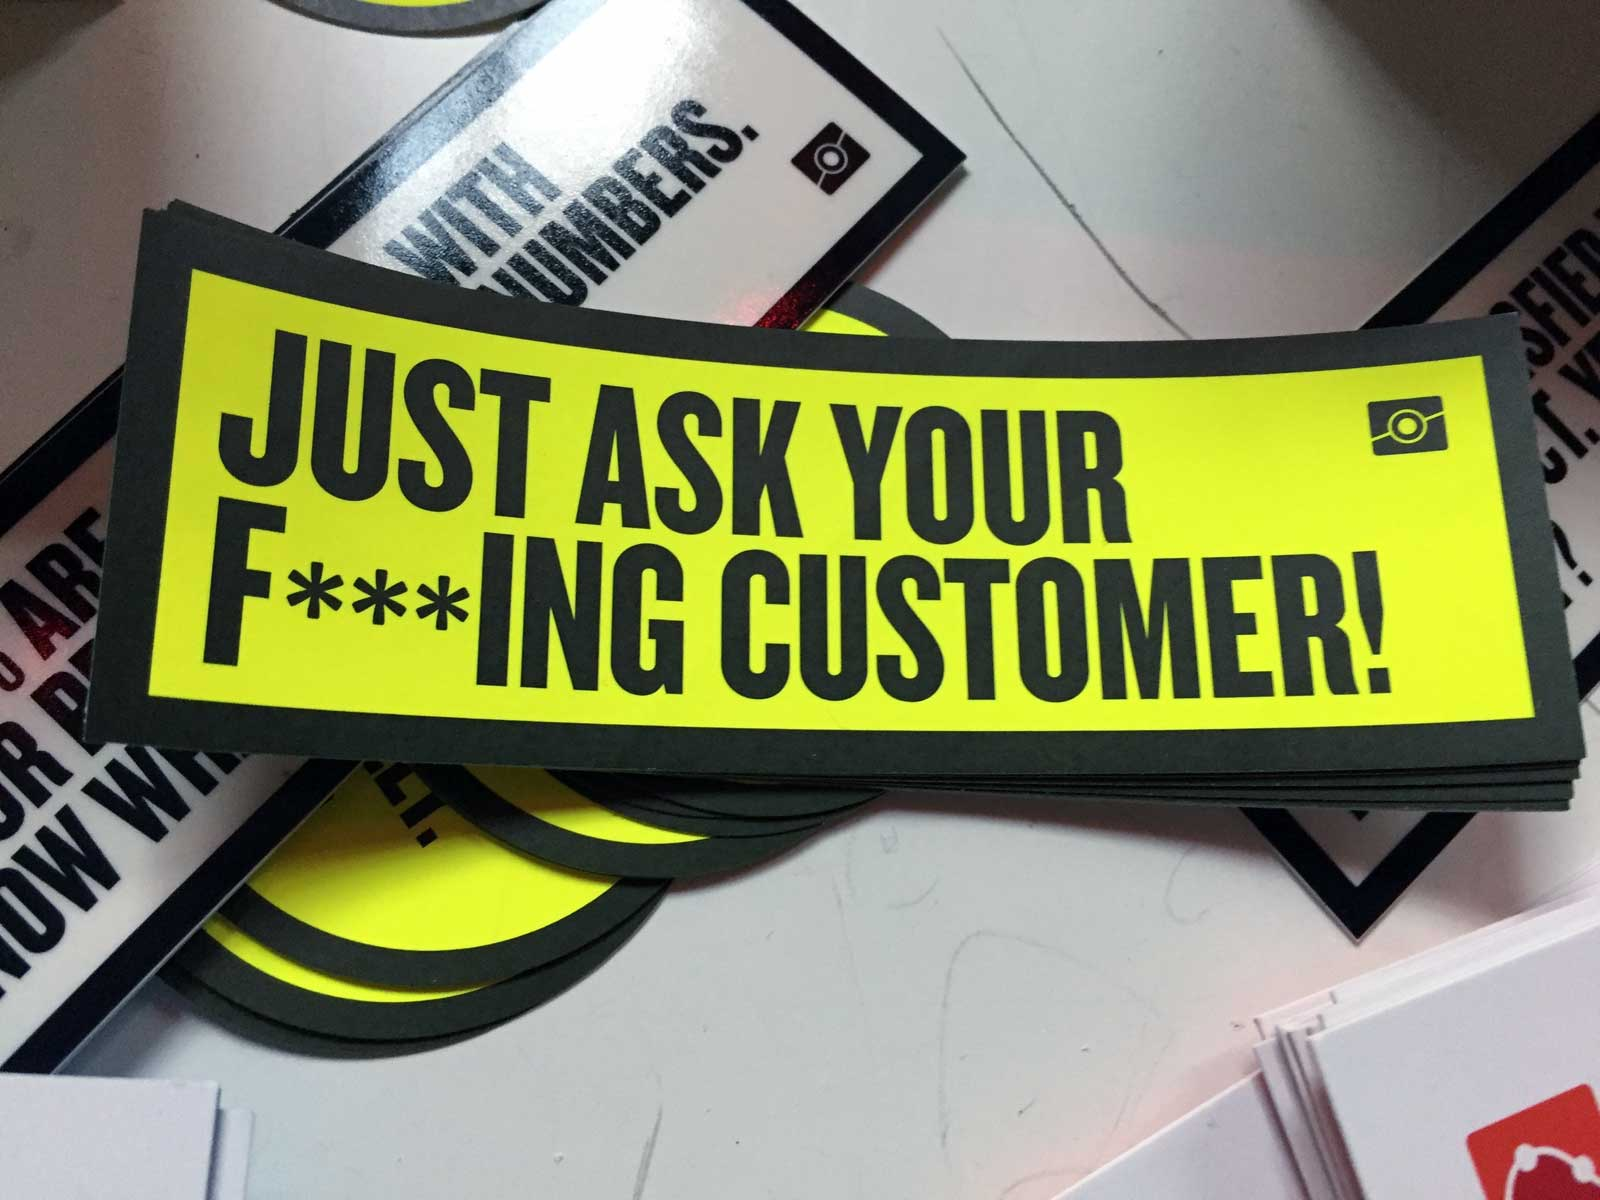 Service Design: Just ask your f***ing customer!